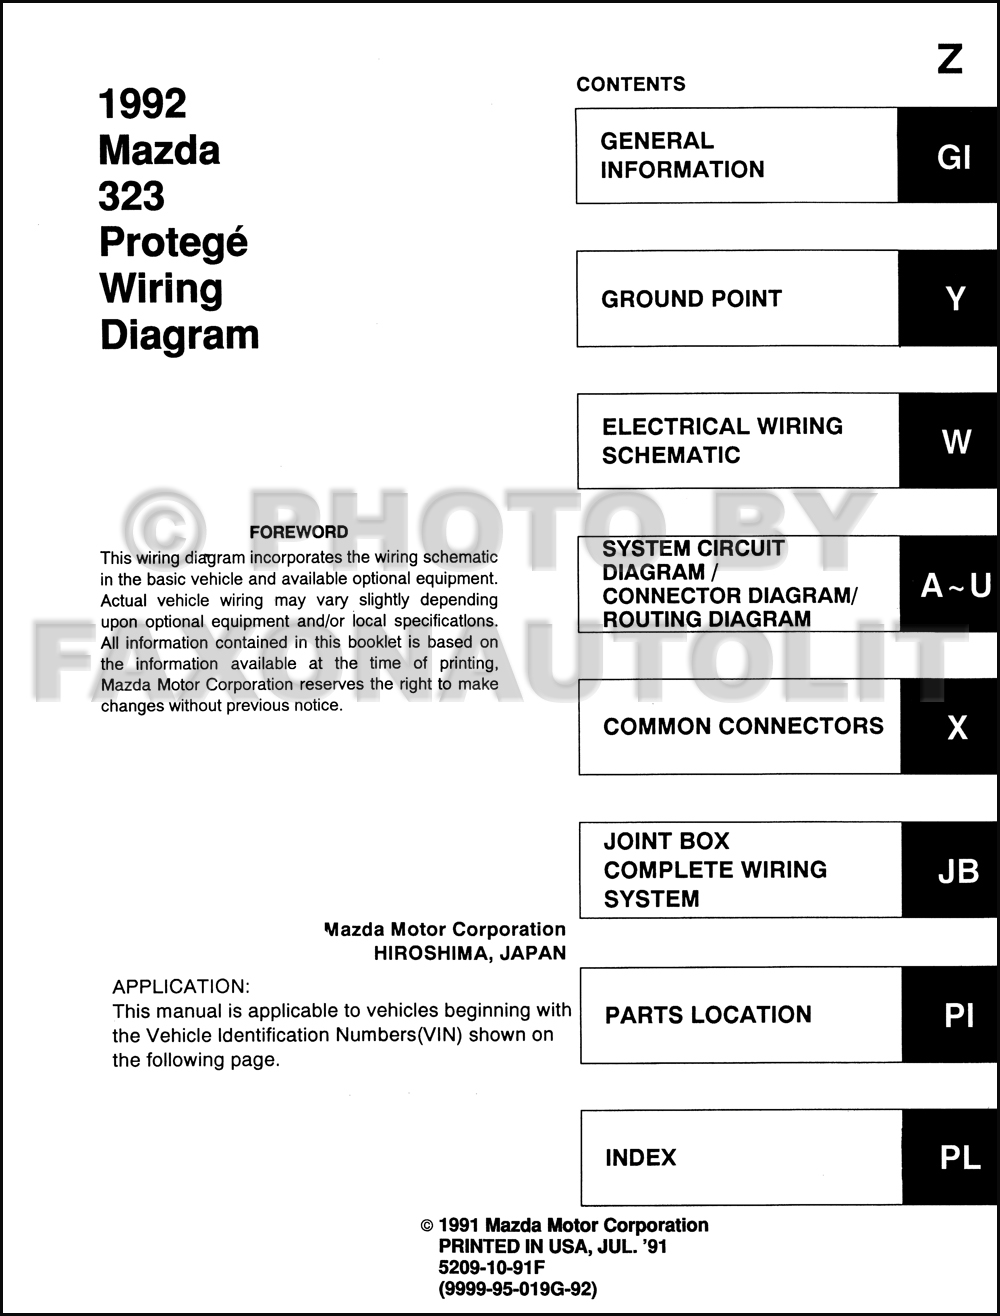 1998 mazda protege wiring diagram 1992 mazda 323 and protege wiring diagram manual original